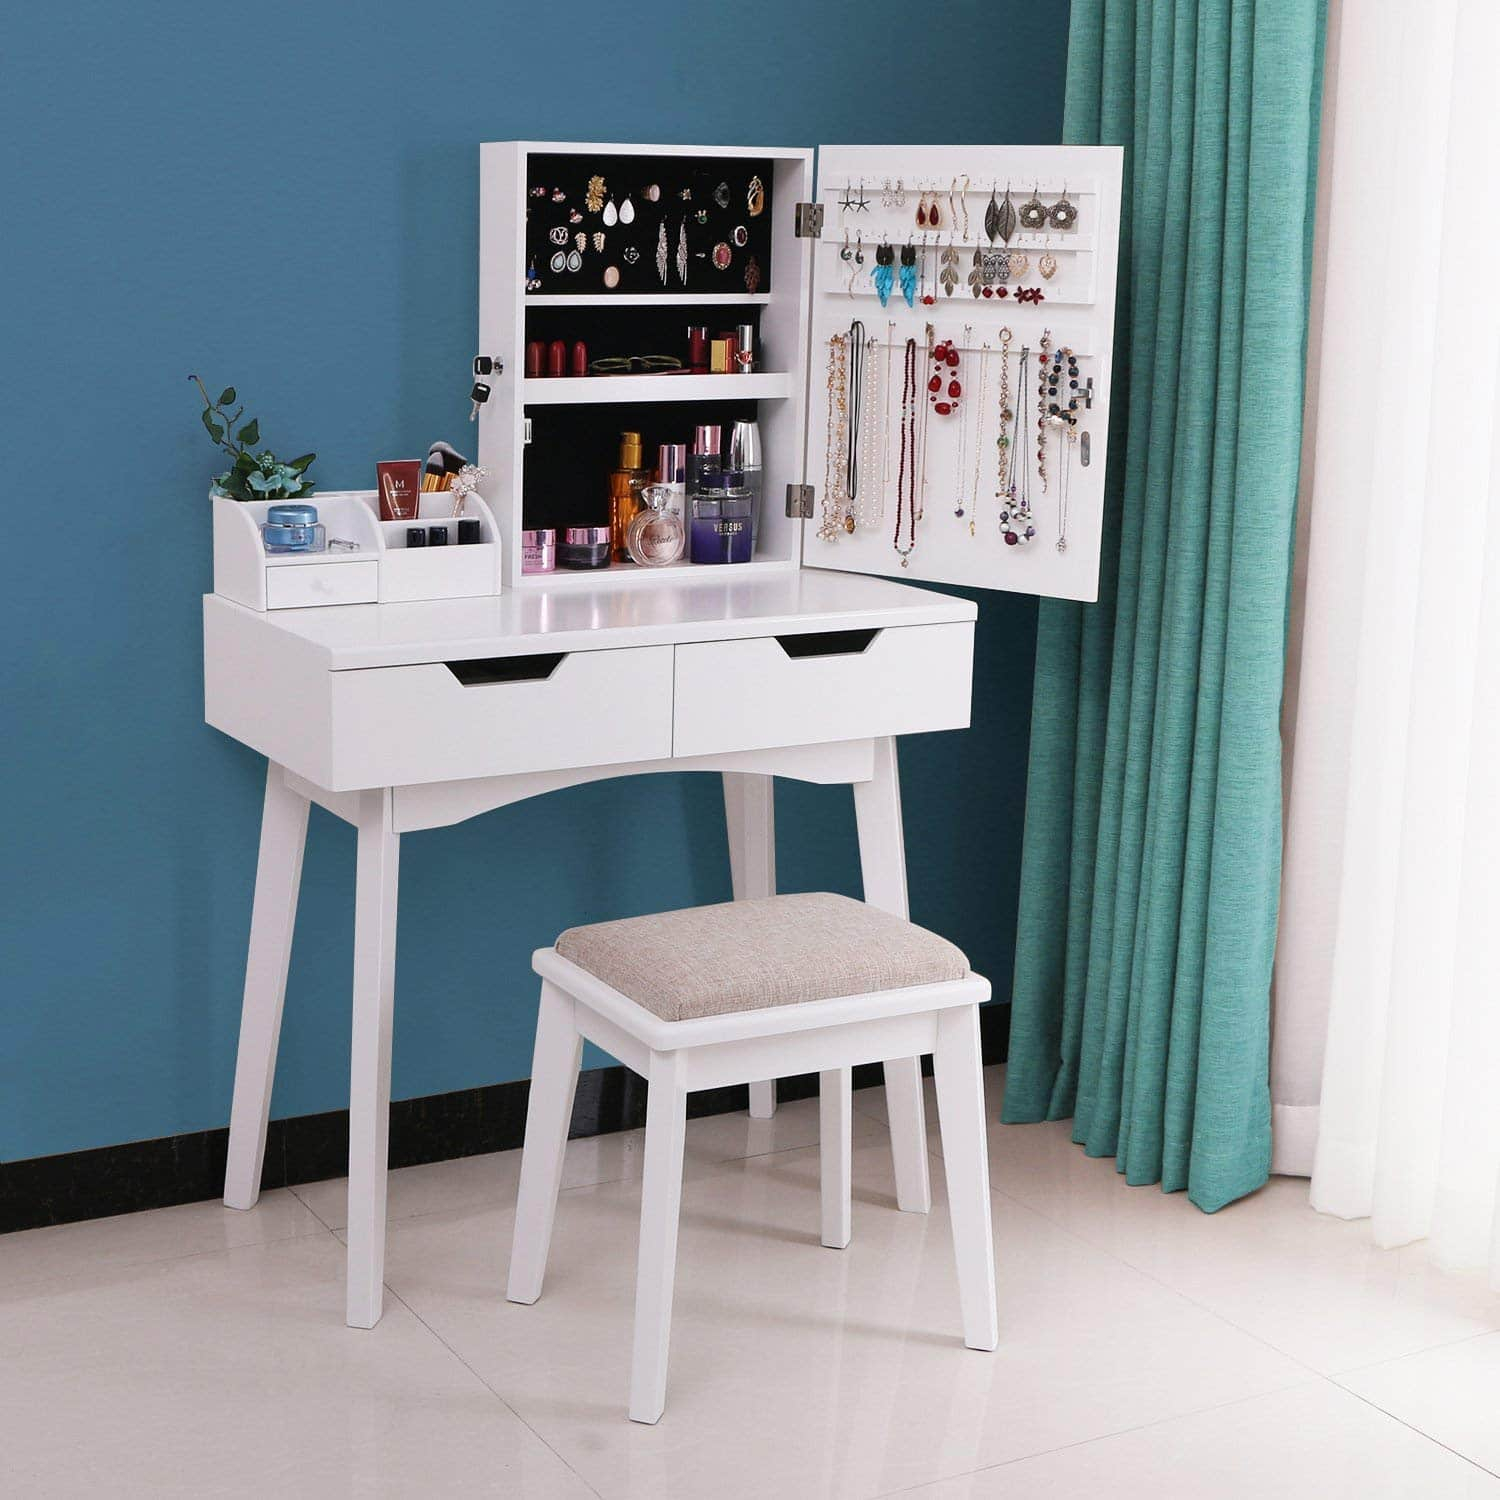 Top 10 Best Vanity Tables In 2020 Reviews Makeup Dressing Tables Hqreview